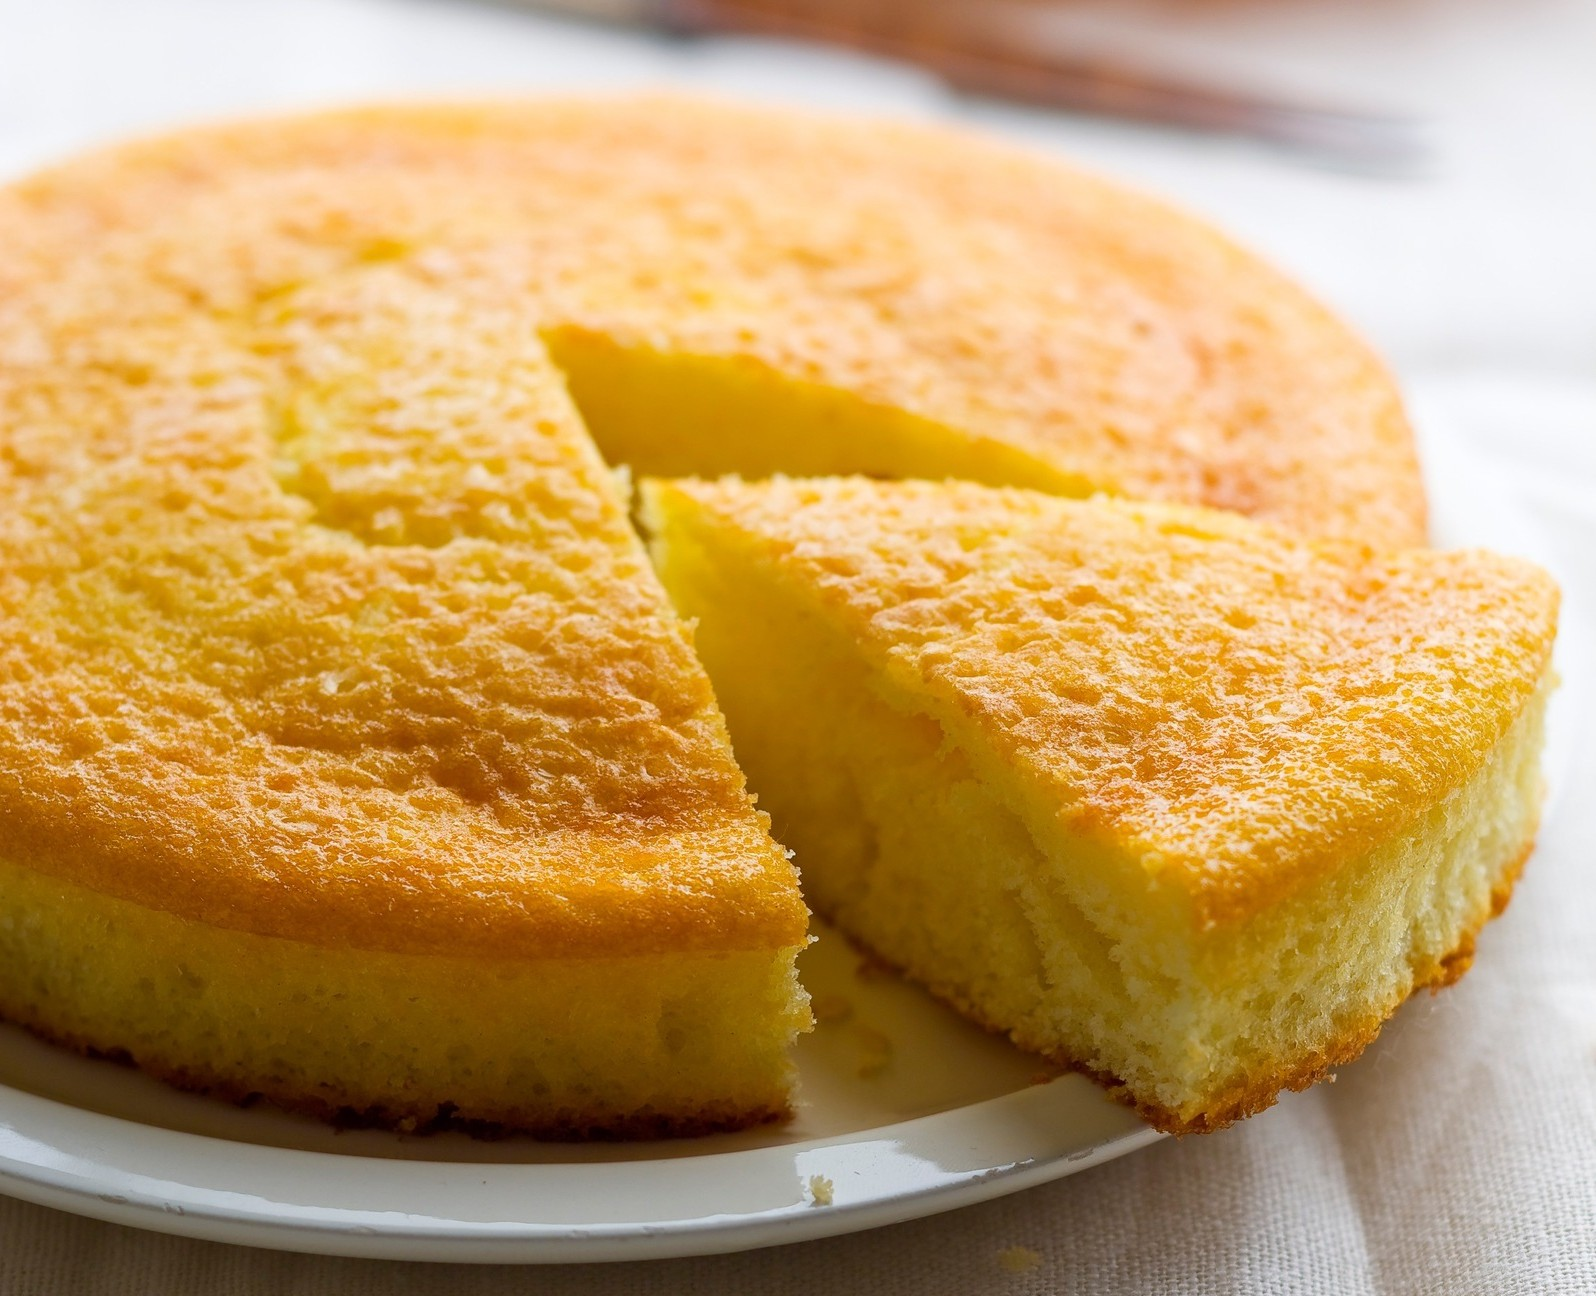 Fabuleux Recette Gâteau au Yaourt Weight Watchers 6 ProPoints IF73